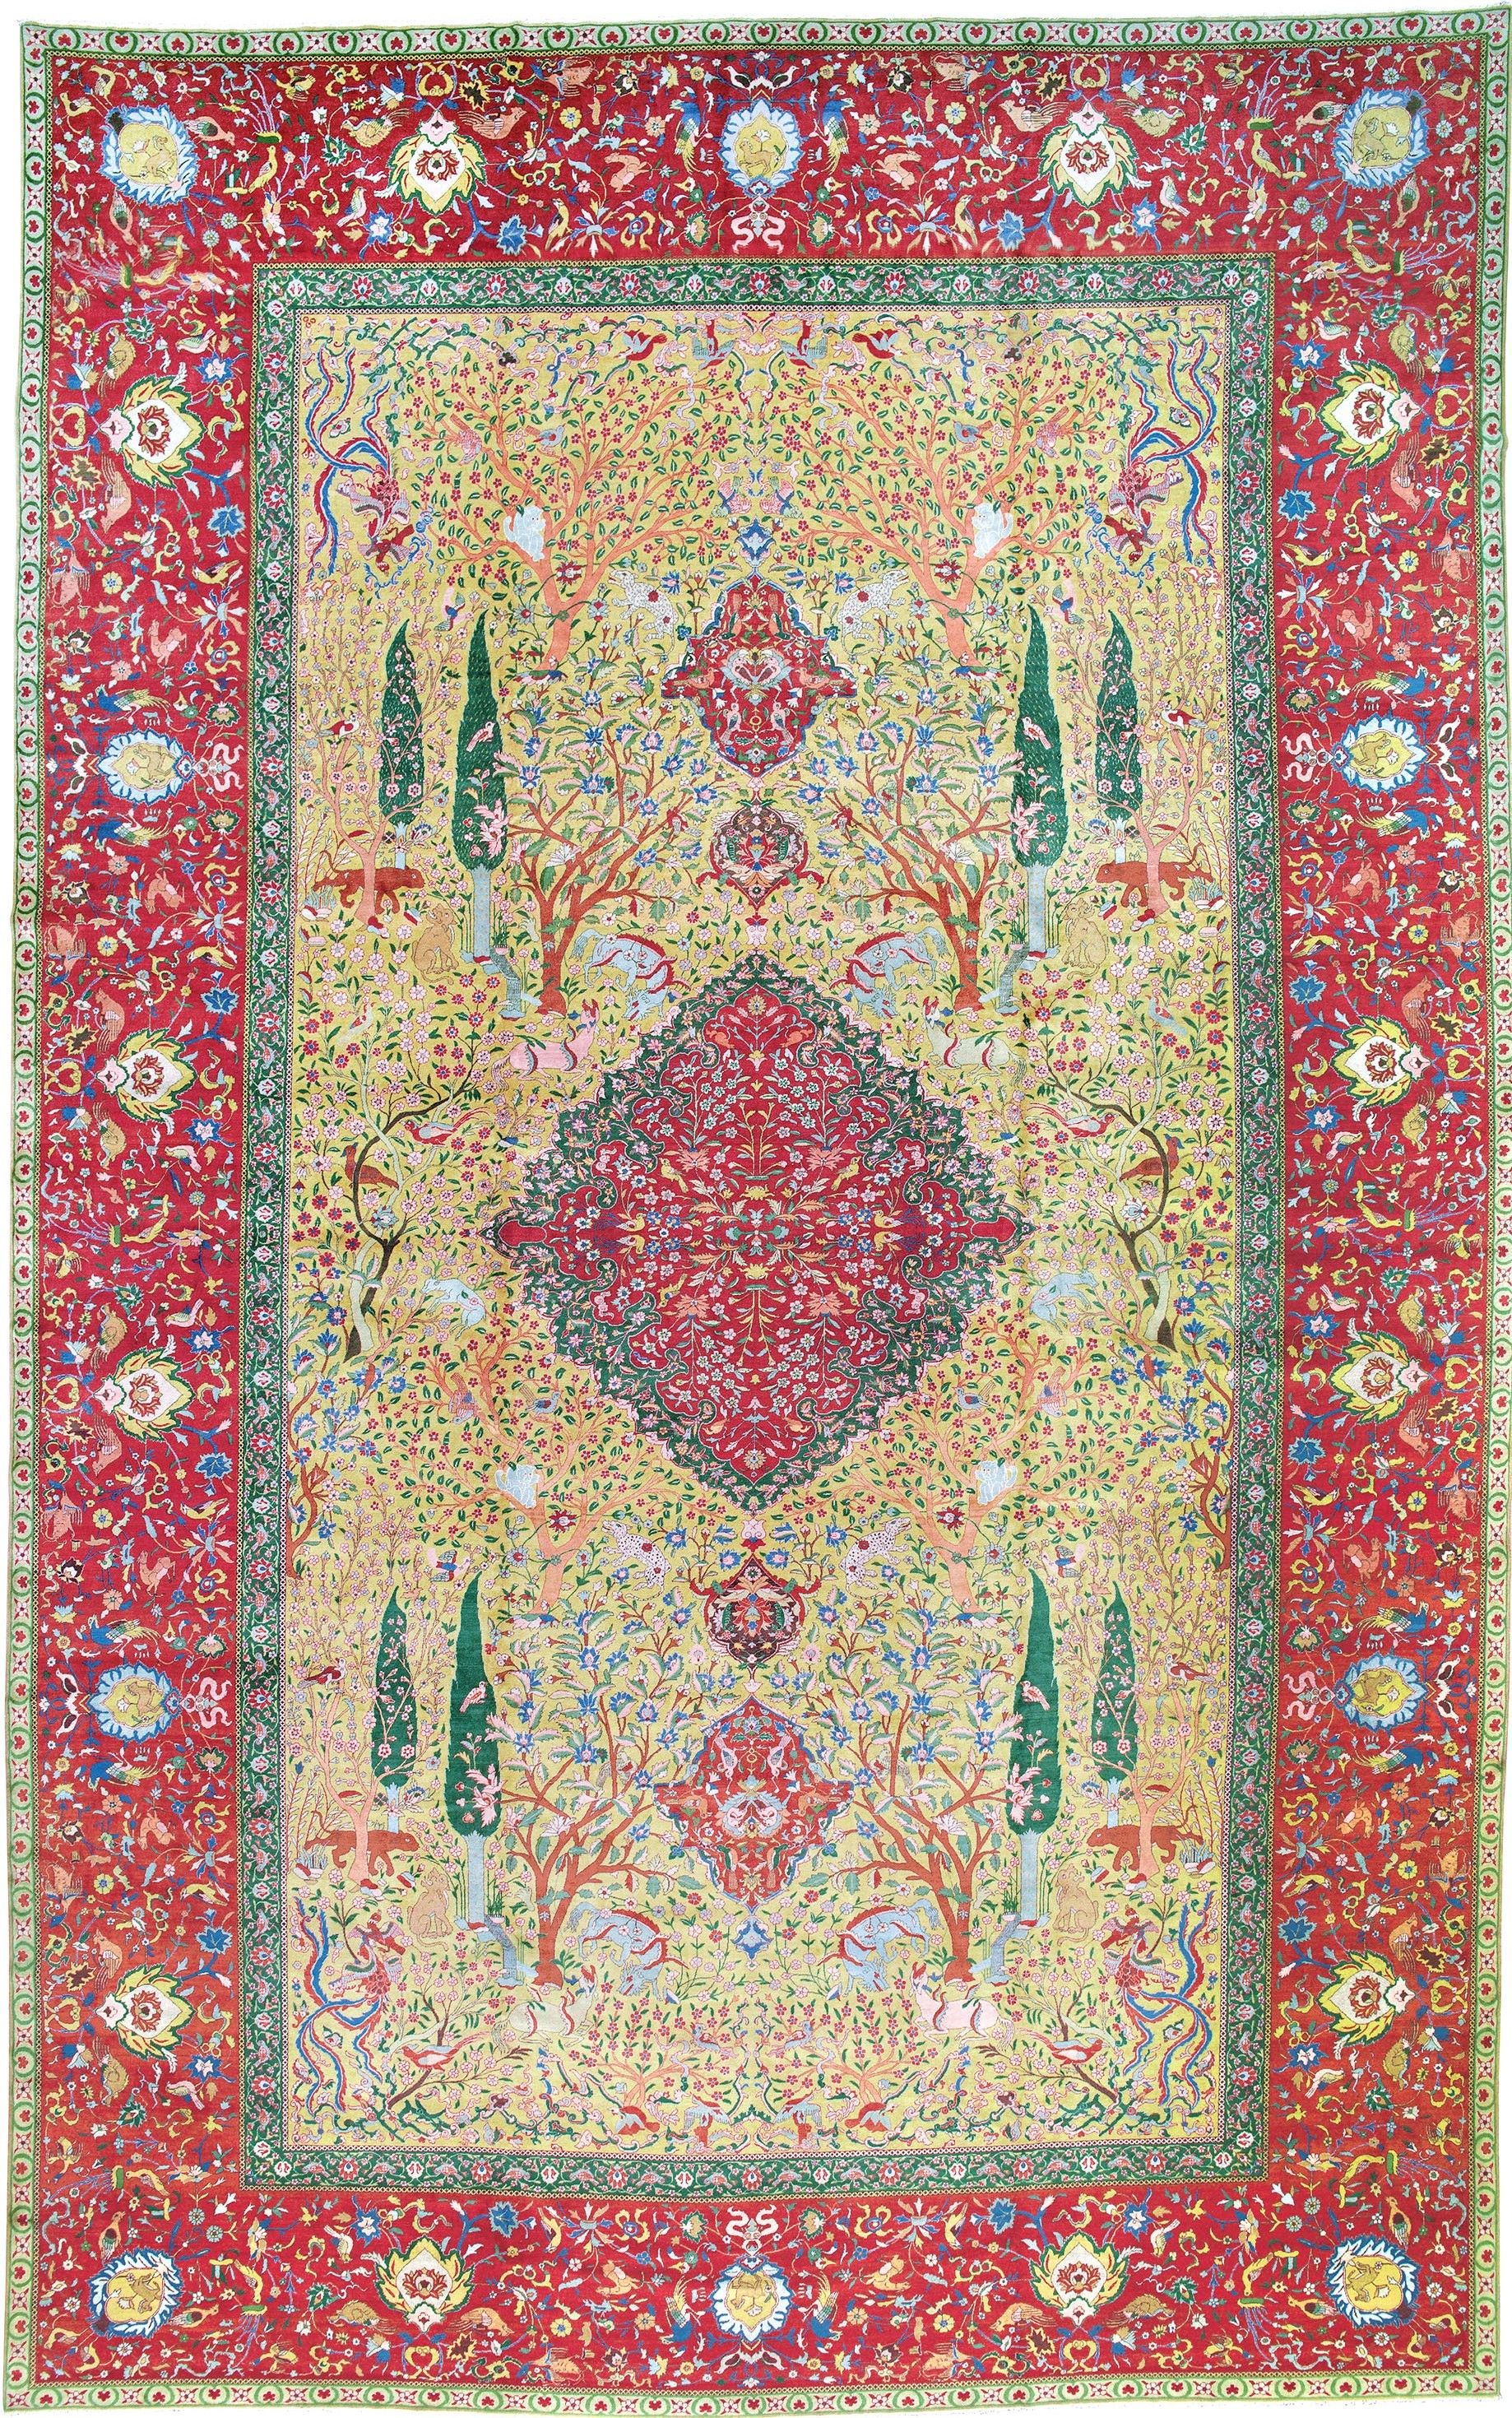 Petag Tabriz Rug Owned By Heinrich Jacob President Of The Petag